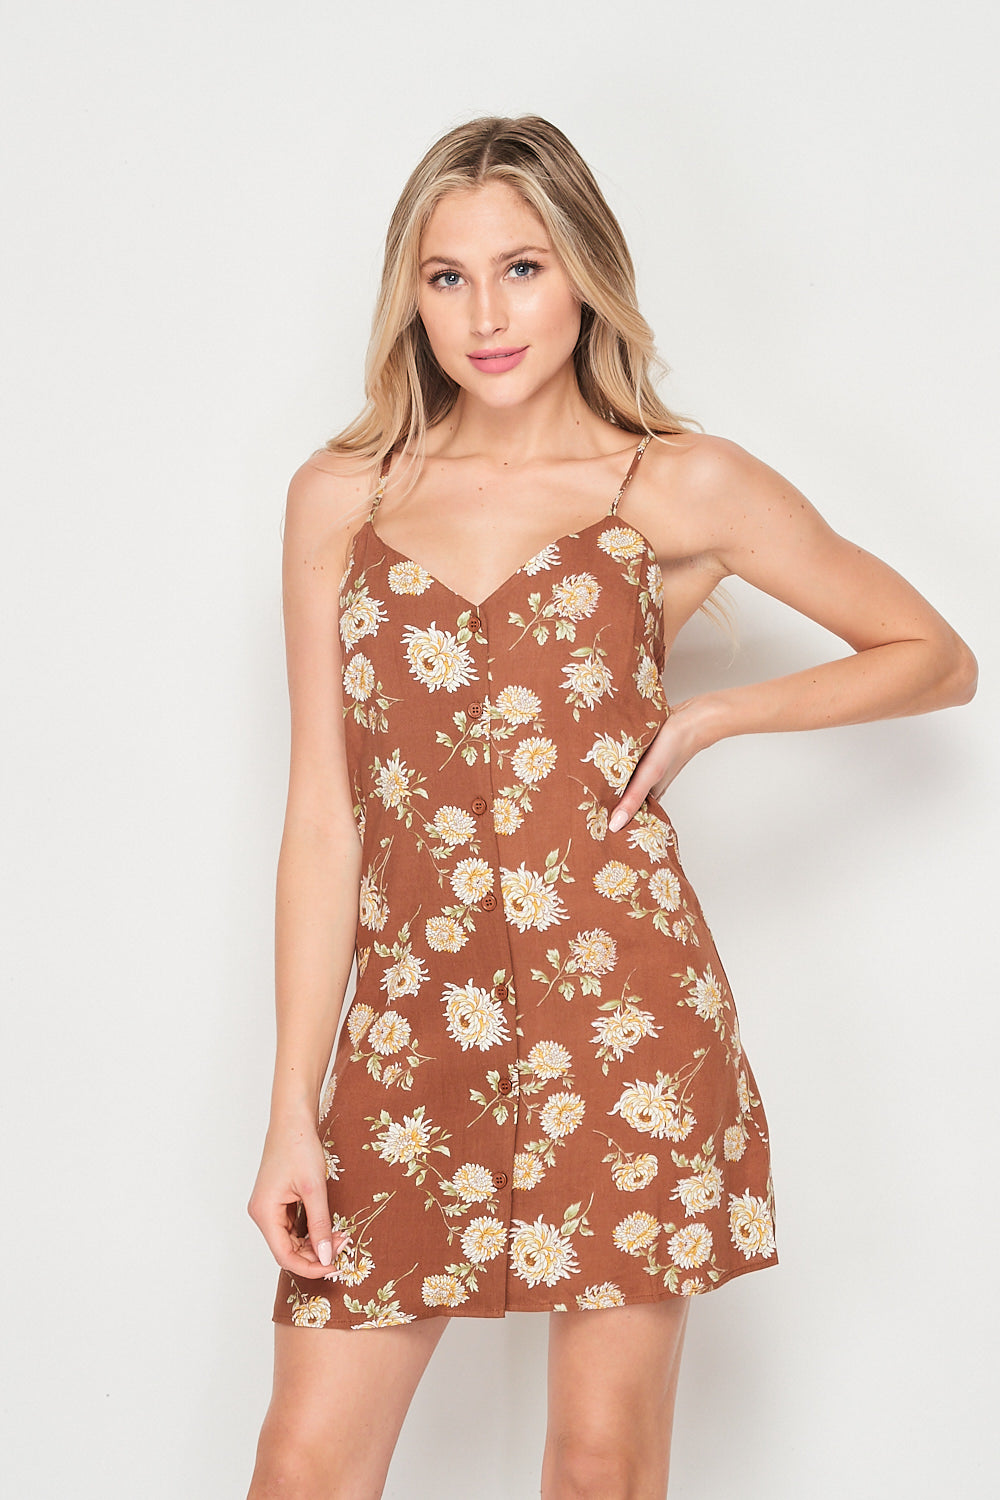 Blank Lewks | Flower Power Camisole Style Dress | Brown